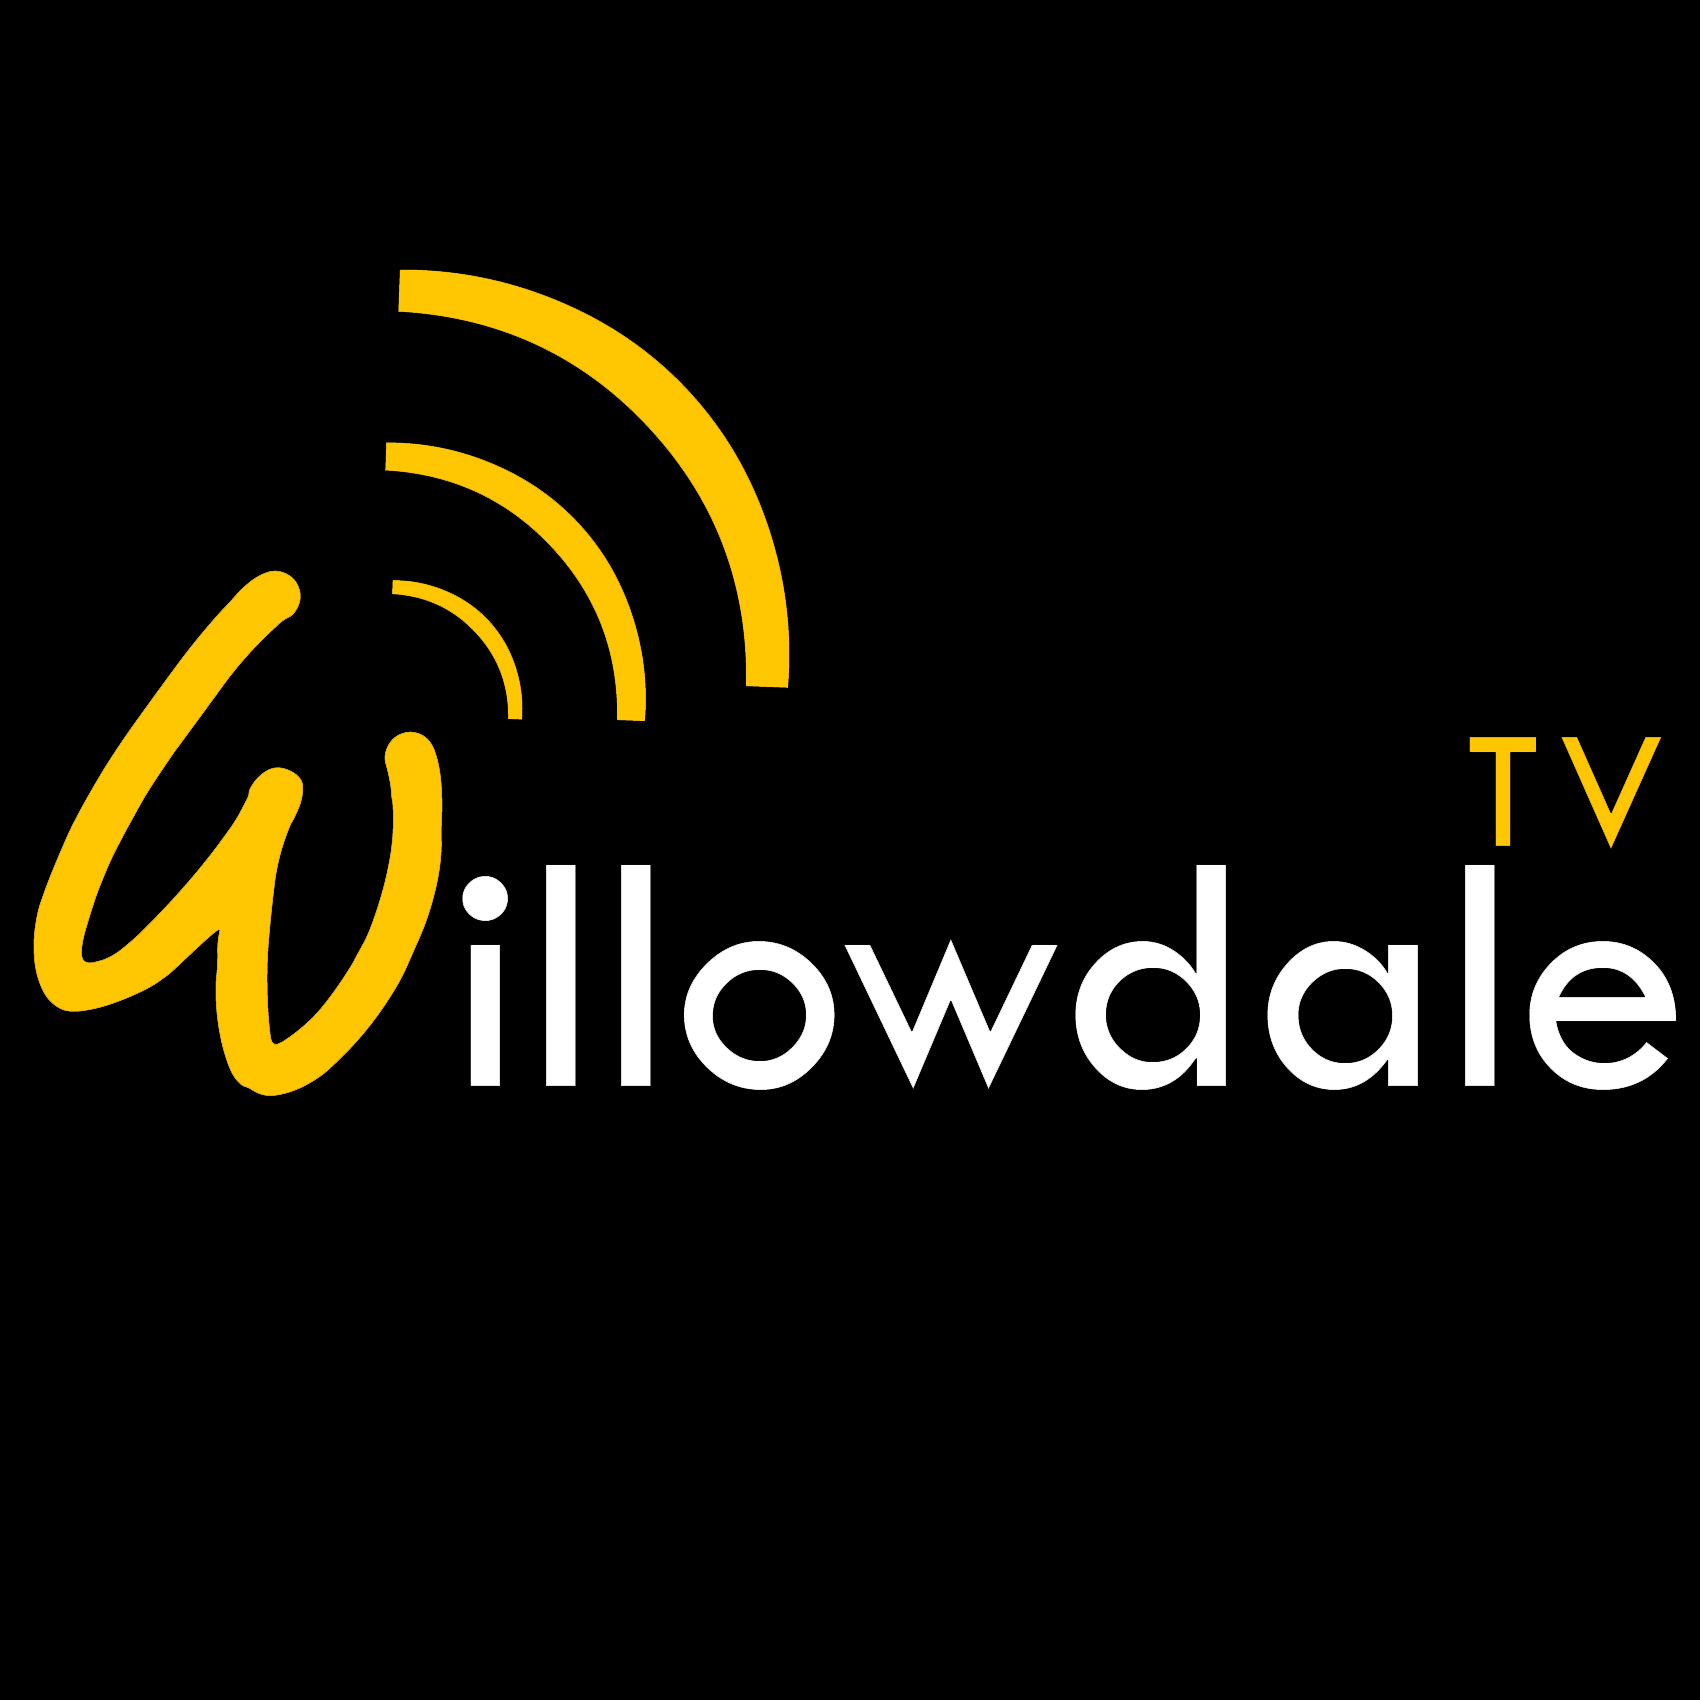 Willowdale TV